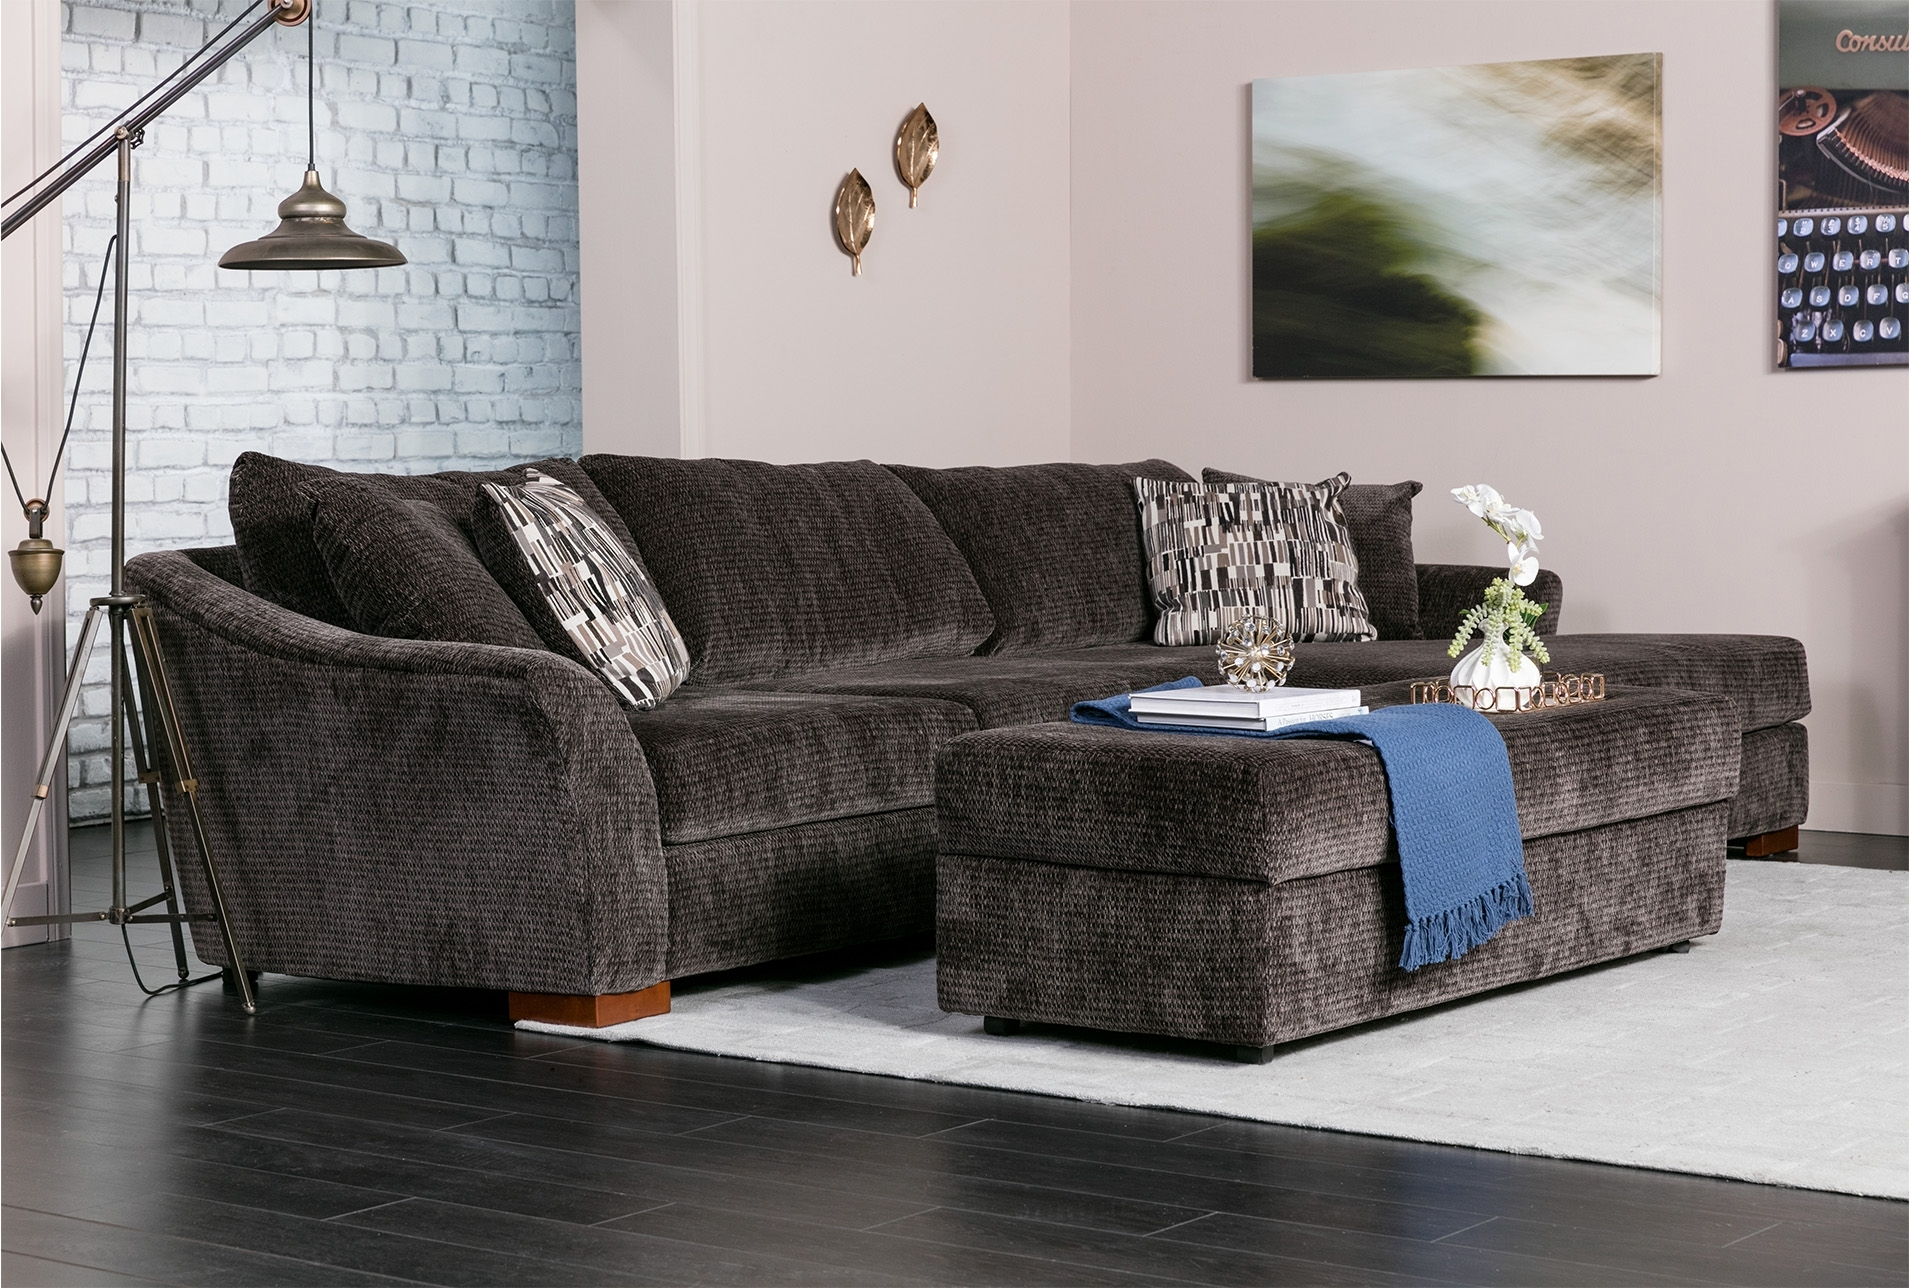 Evan 2 Piece Sectional W/raf Chaise | Ottomans And Products In Evan 2 Piece Sectionals With Raf Chaise (Image 15 of 25)